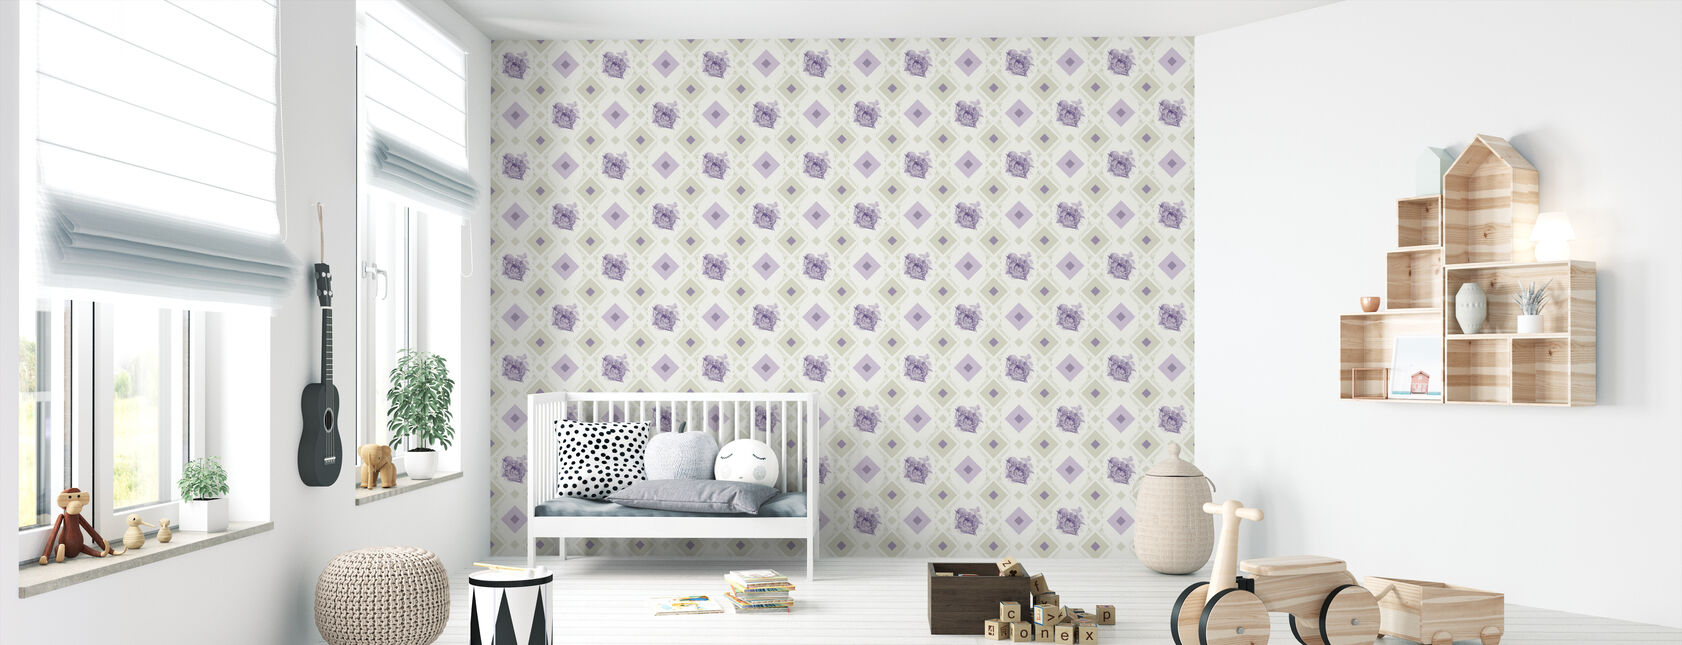 Dormouse - Gooseframe - Green Purple - Wallpaper - Nursery